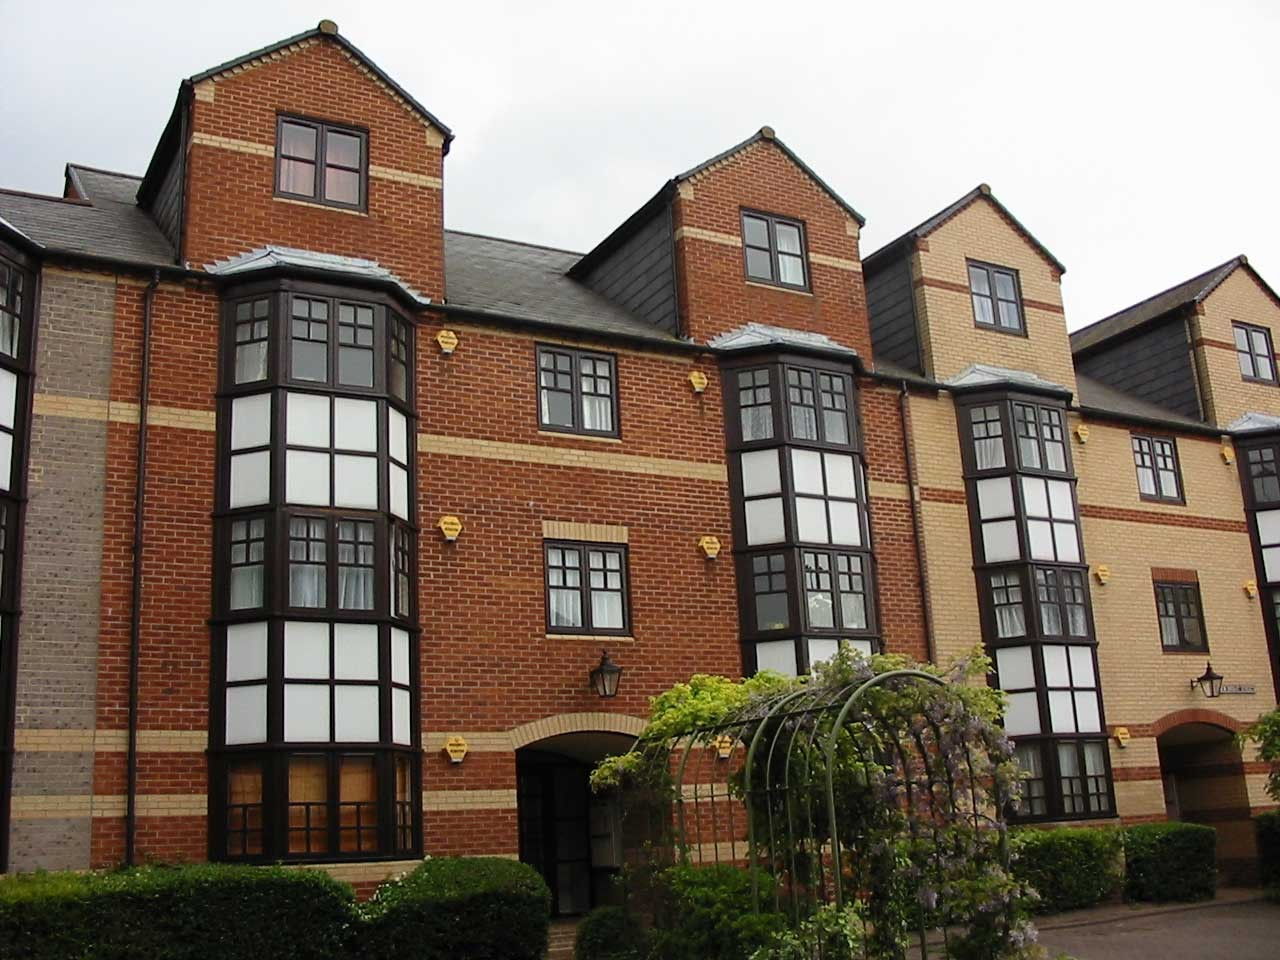 Maltings Place, Reading, RG1 6QG